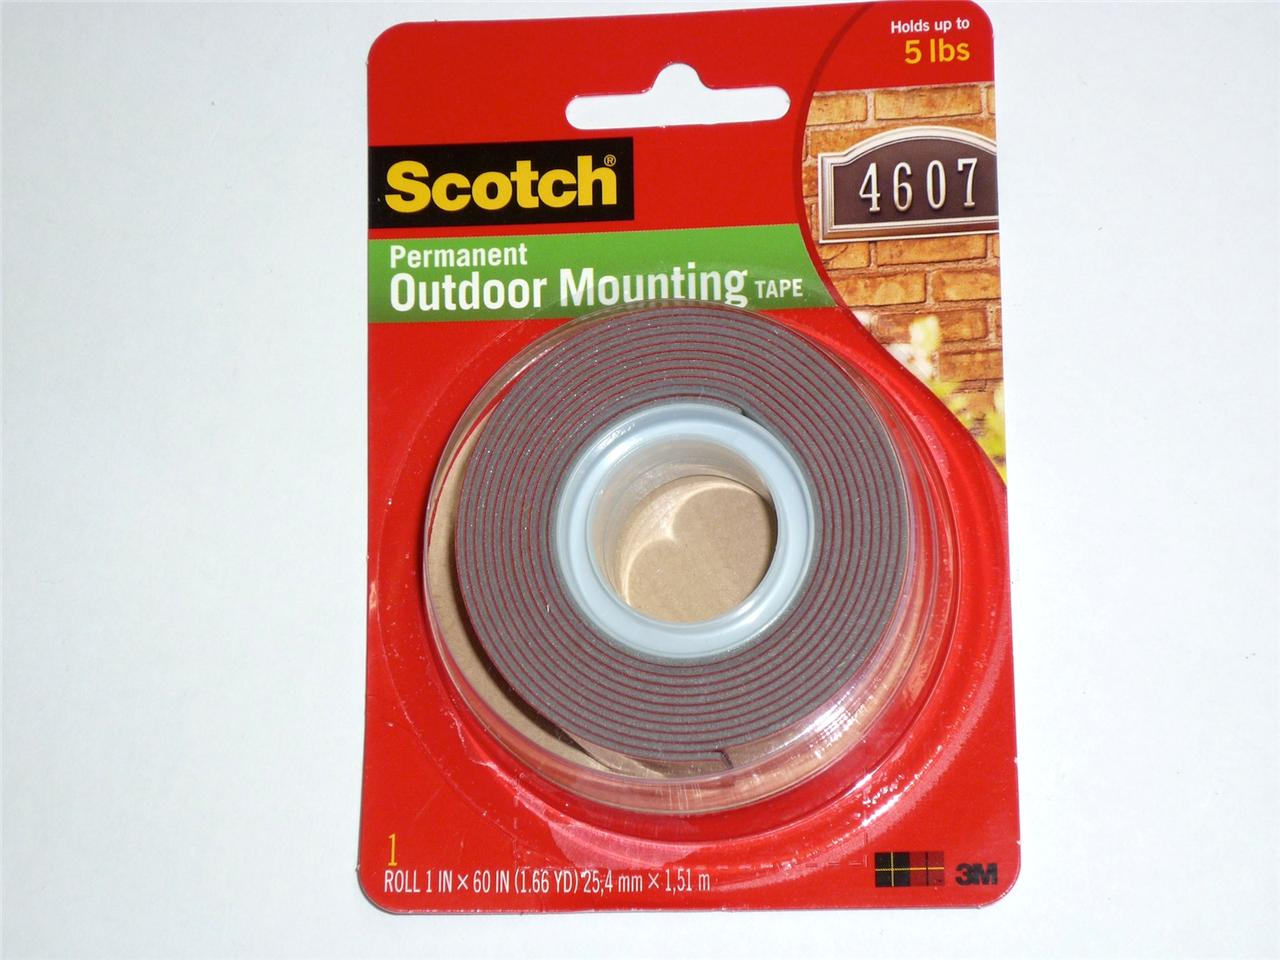 3m Scotch Permanent Outdoor Mounting Tape 25 4mmx1 51m Hold 2 3kg Cat 4011